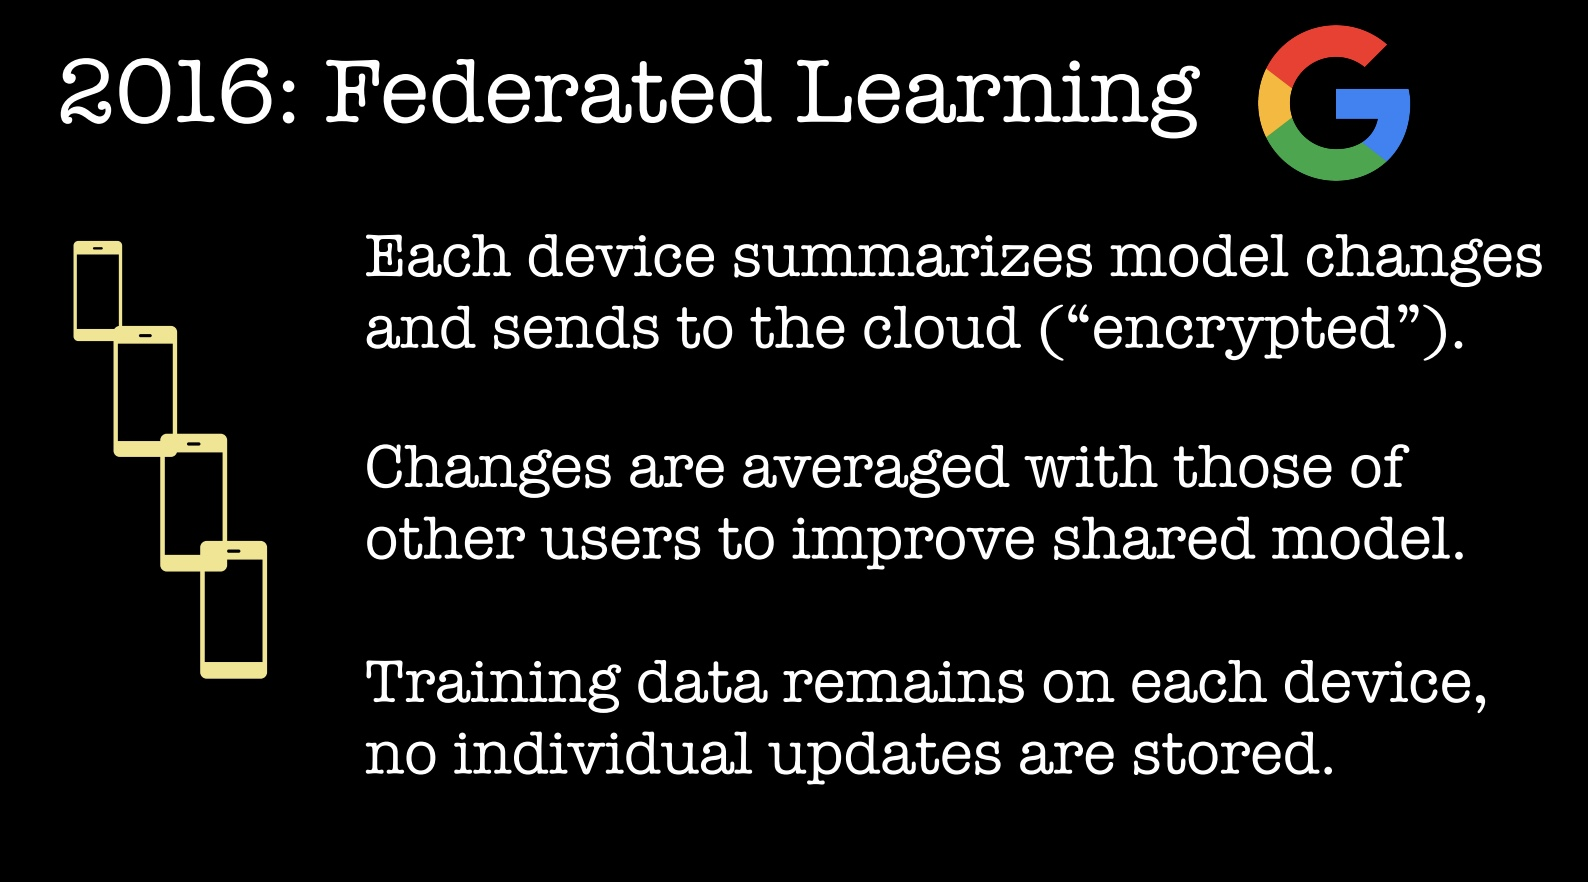 2016 Federated Learning